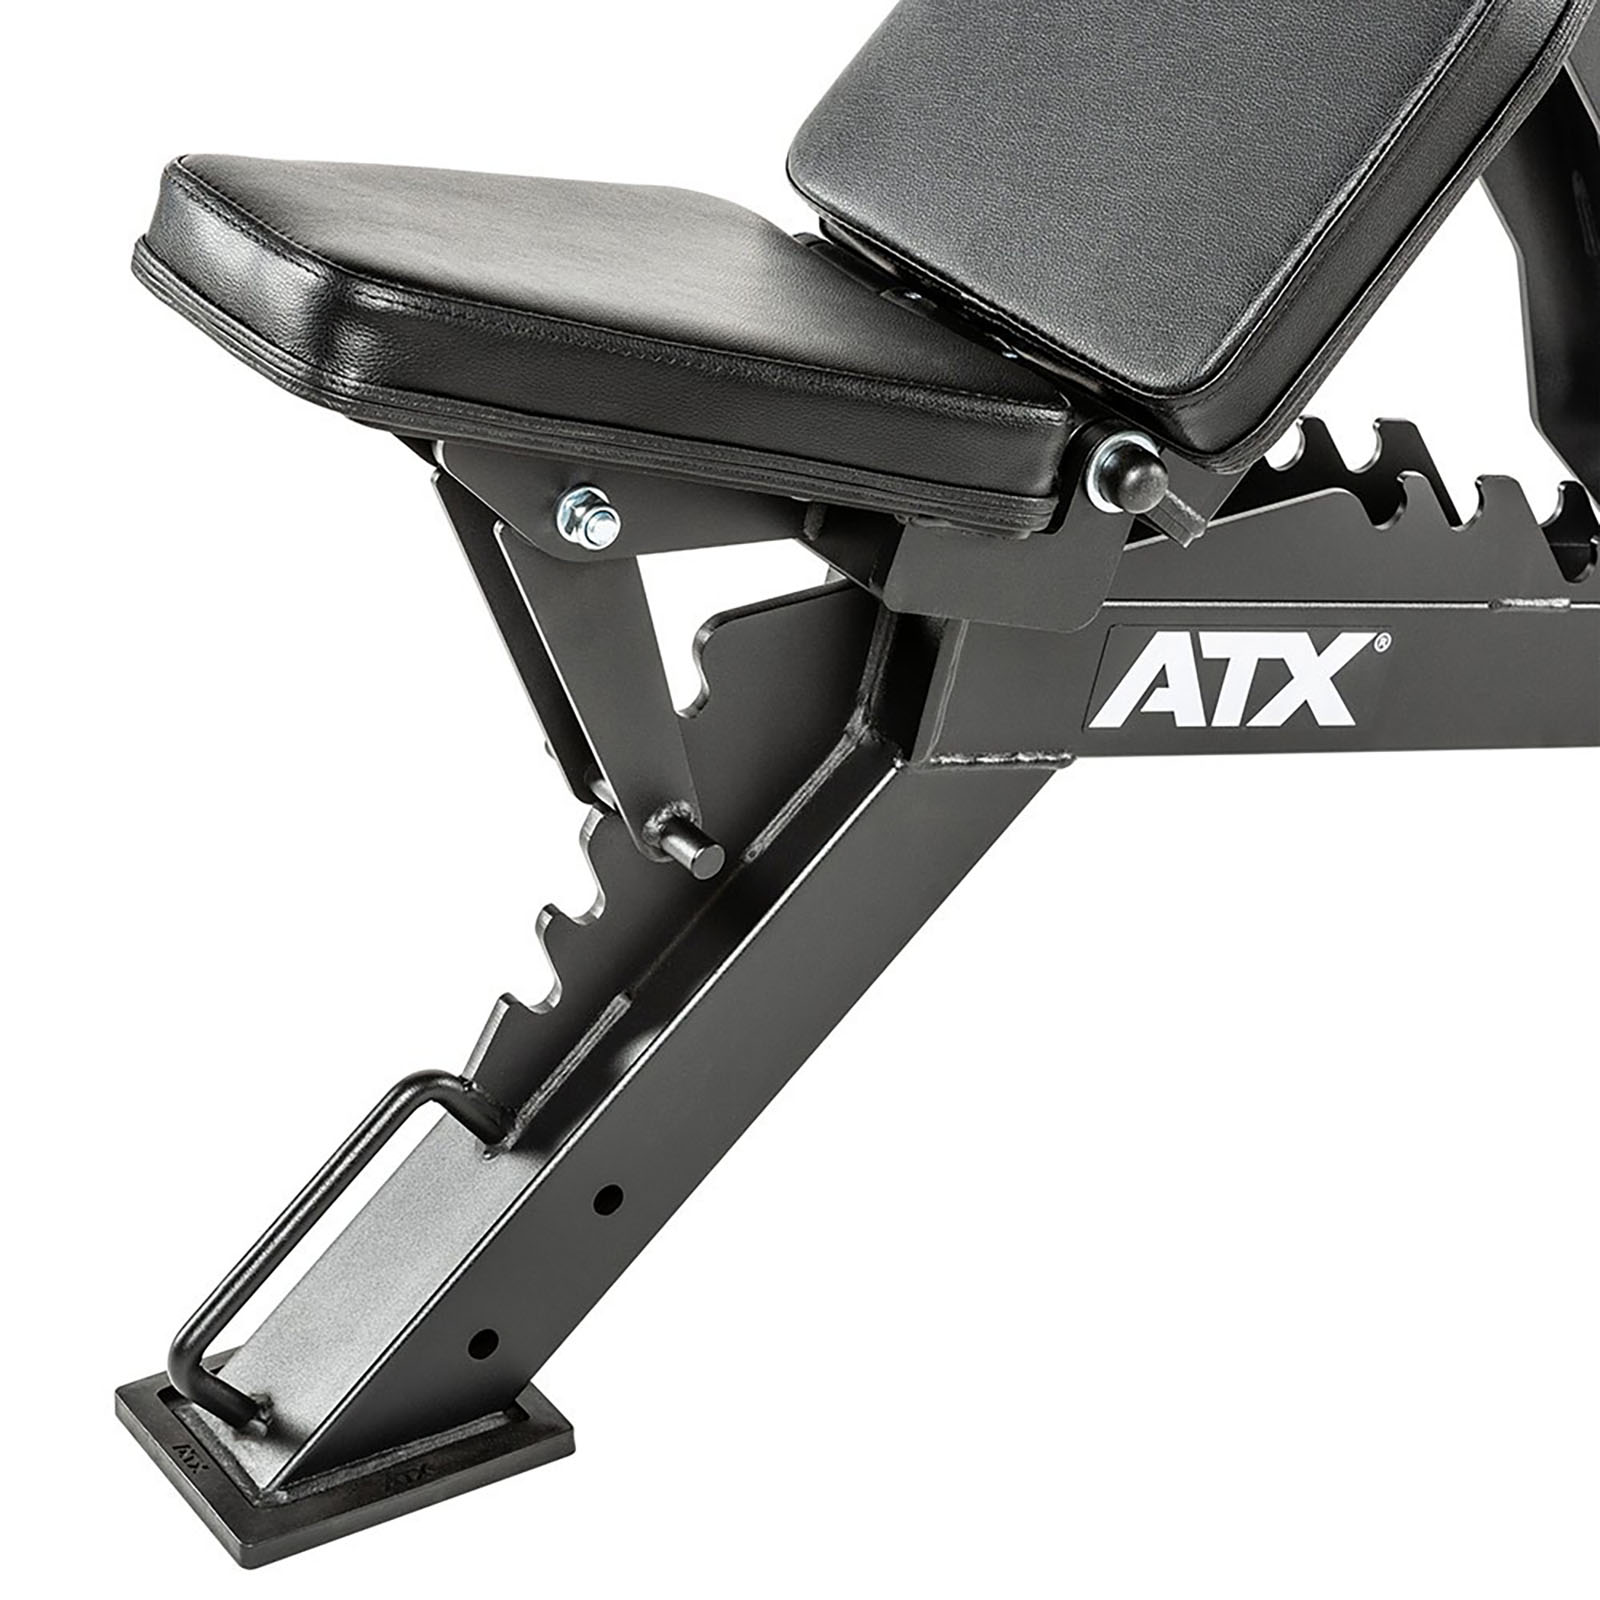 11 Bench Adjustment Angles. 3 Seat Angles